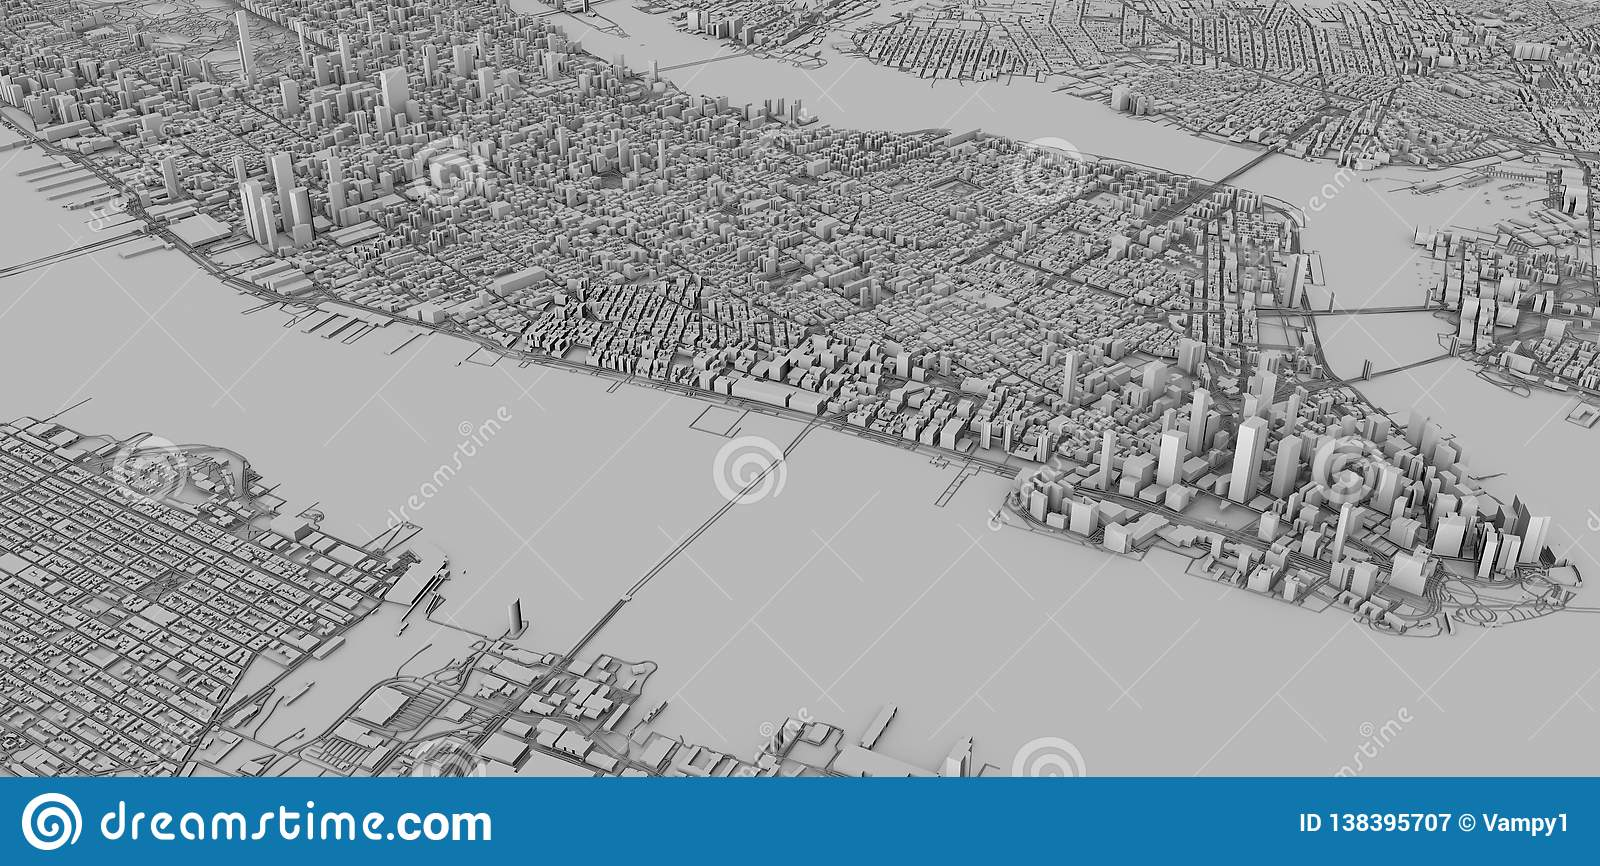 Map Of New York 3d.Satellite View Of New York City Map 3d Buildings 3d Rendering